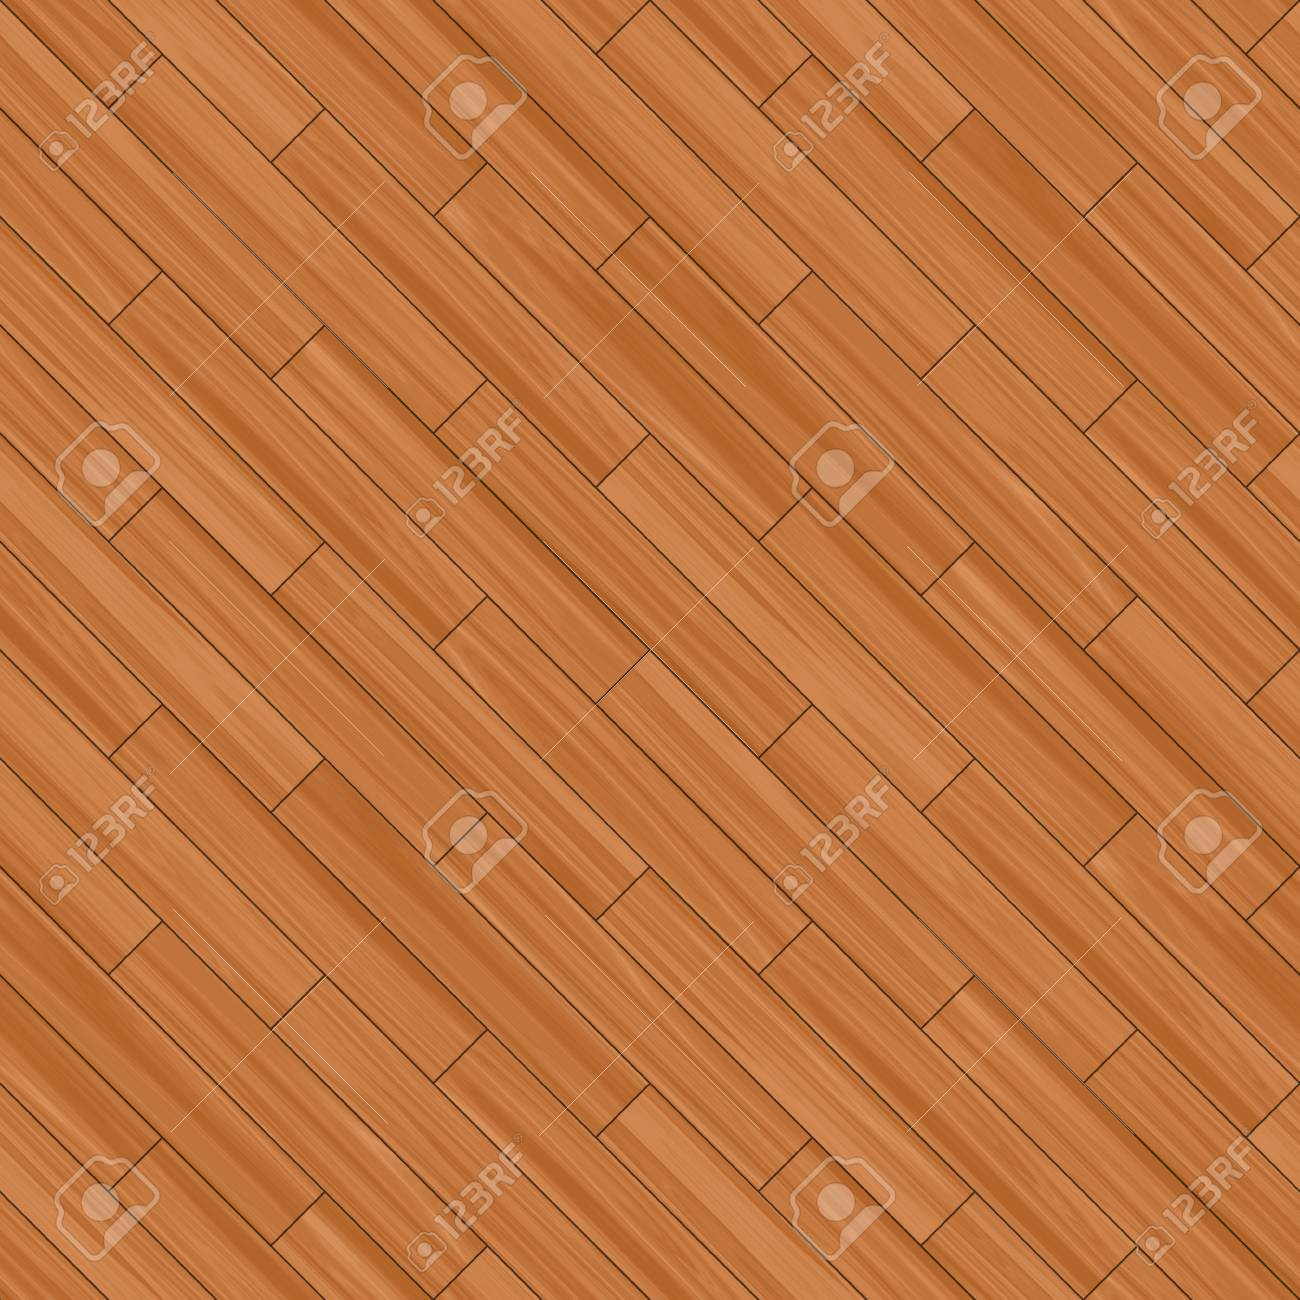 Wooden parquet natural finish seamless tiling texture background wooden parquet natural finish seamless tiling texture background stock photo 5738862 dailygadgetfo Image collections